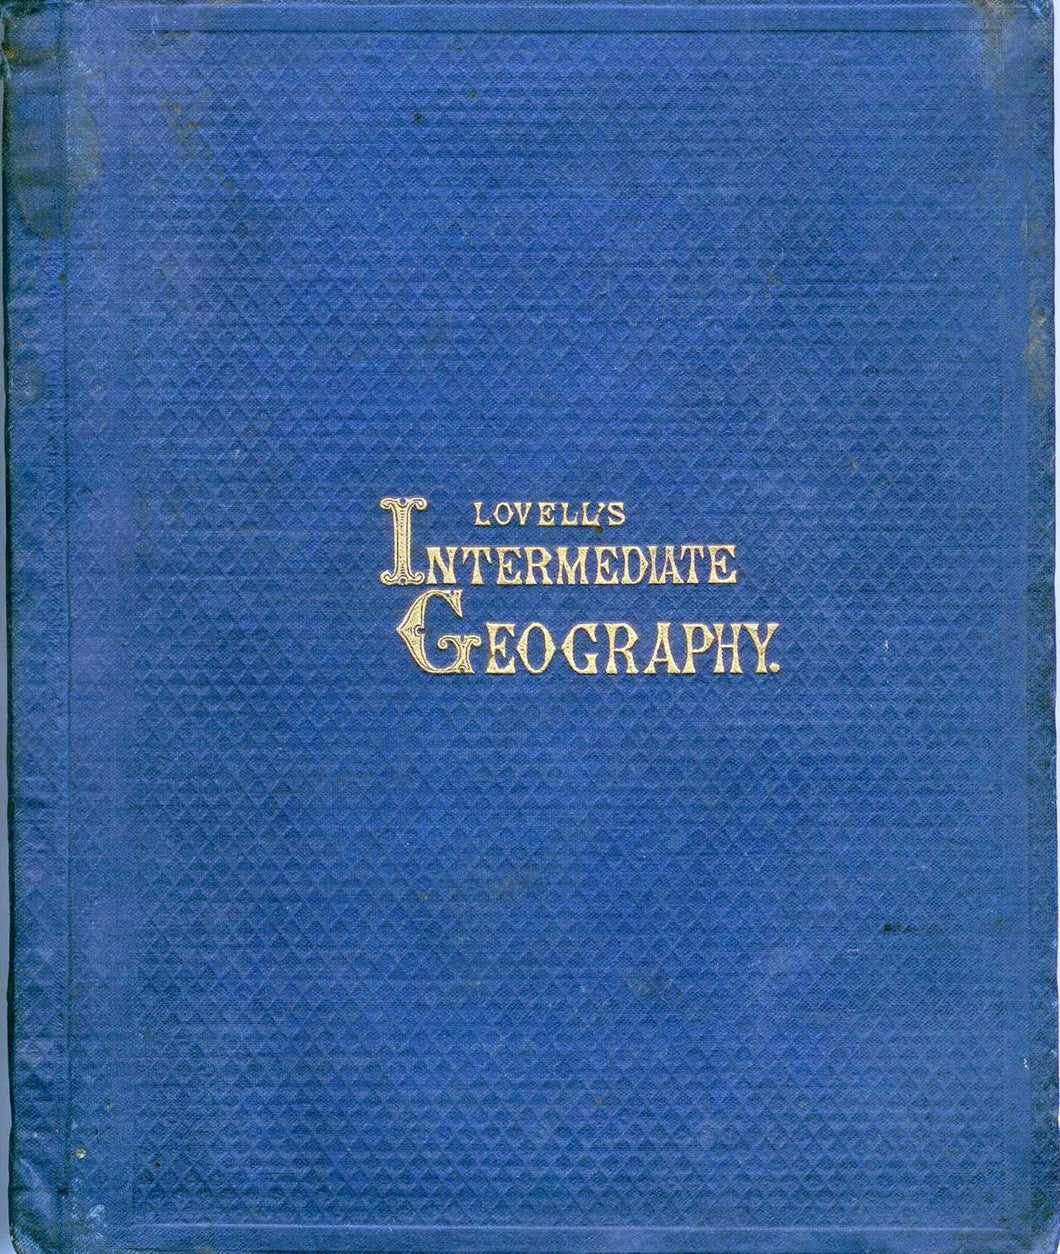 Lovell's Intermediate Geography, With Maps and Illustrations; Being Introductory to Lovell's Advanced Geography